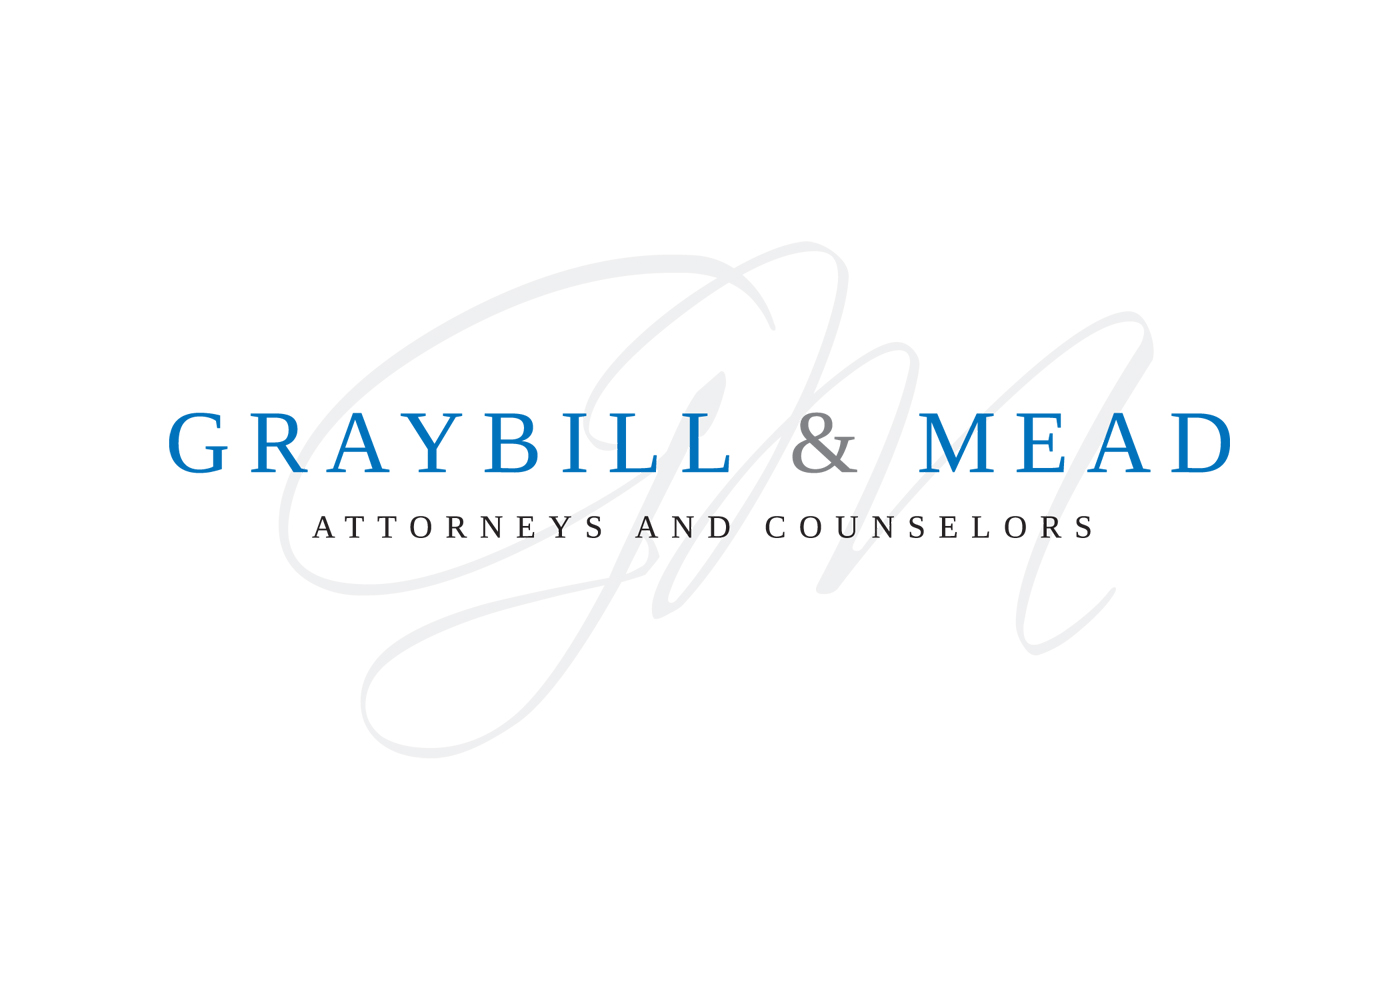 Graybill & Mead